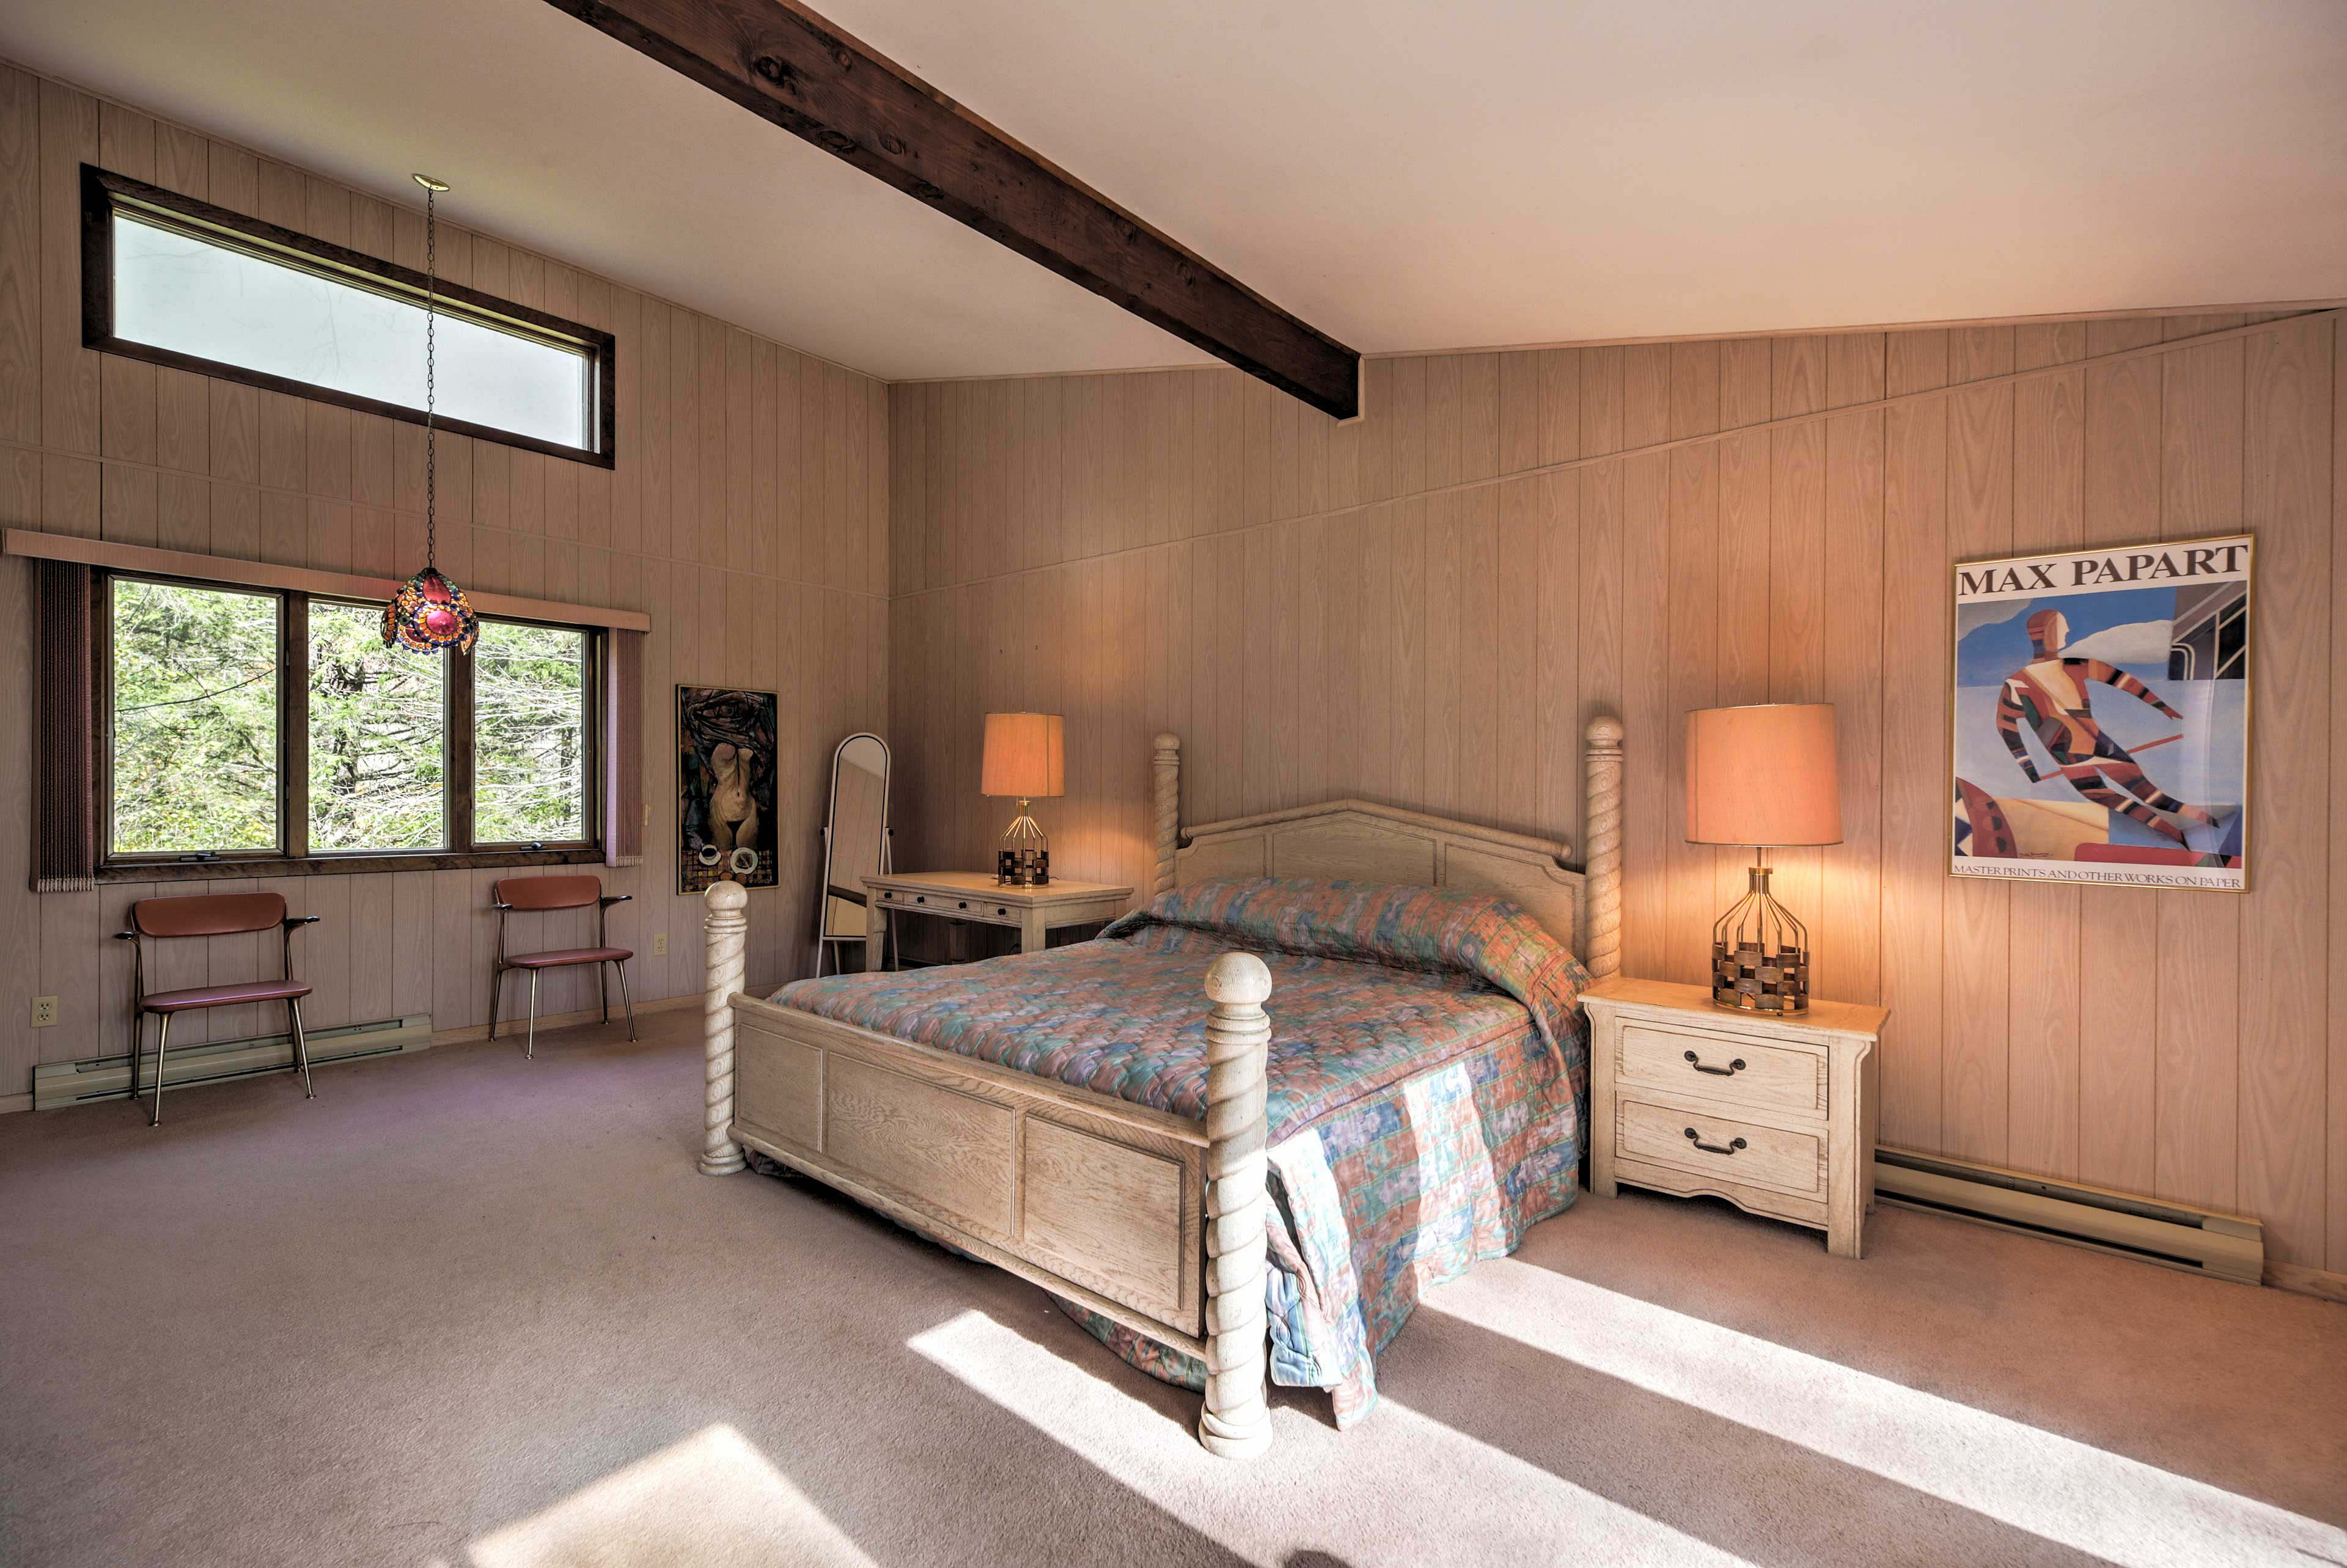 Cozy up on this king-sized bed in the master bedroom.